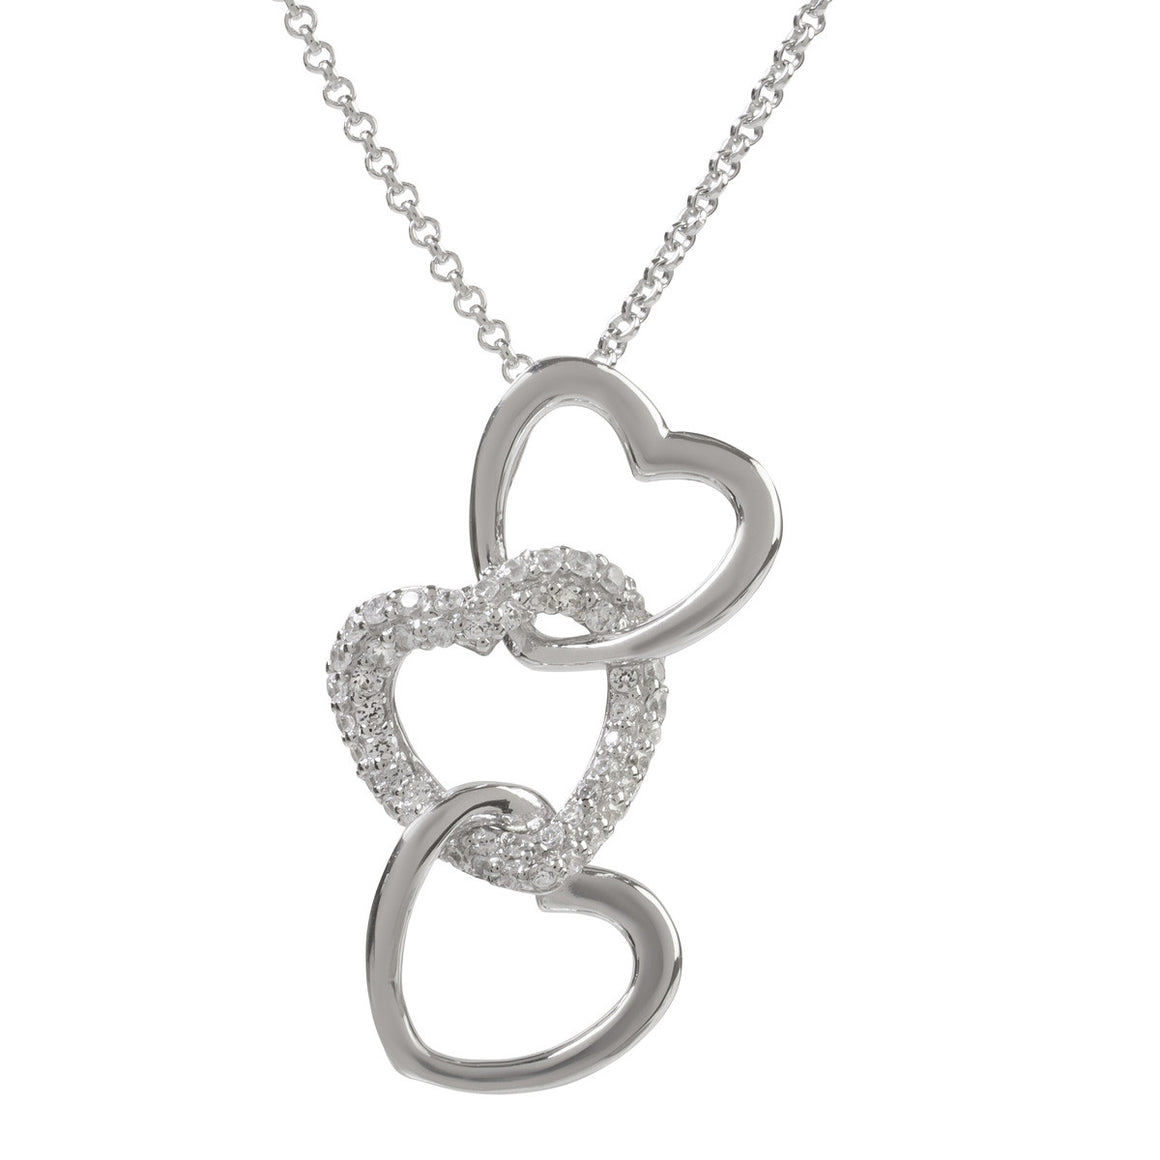 Sophie Oliver Luna Triple Heart Necklace - The Love Trees